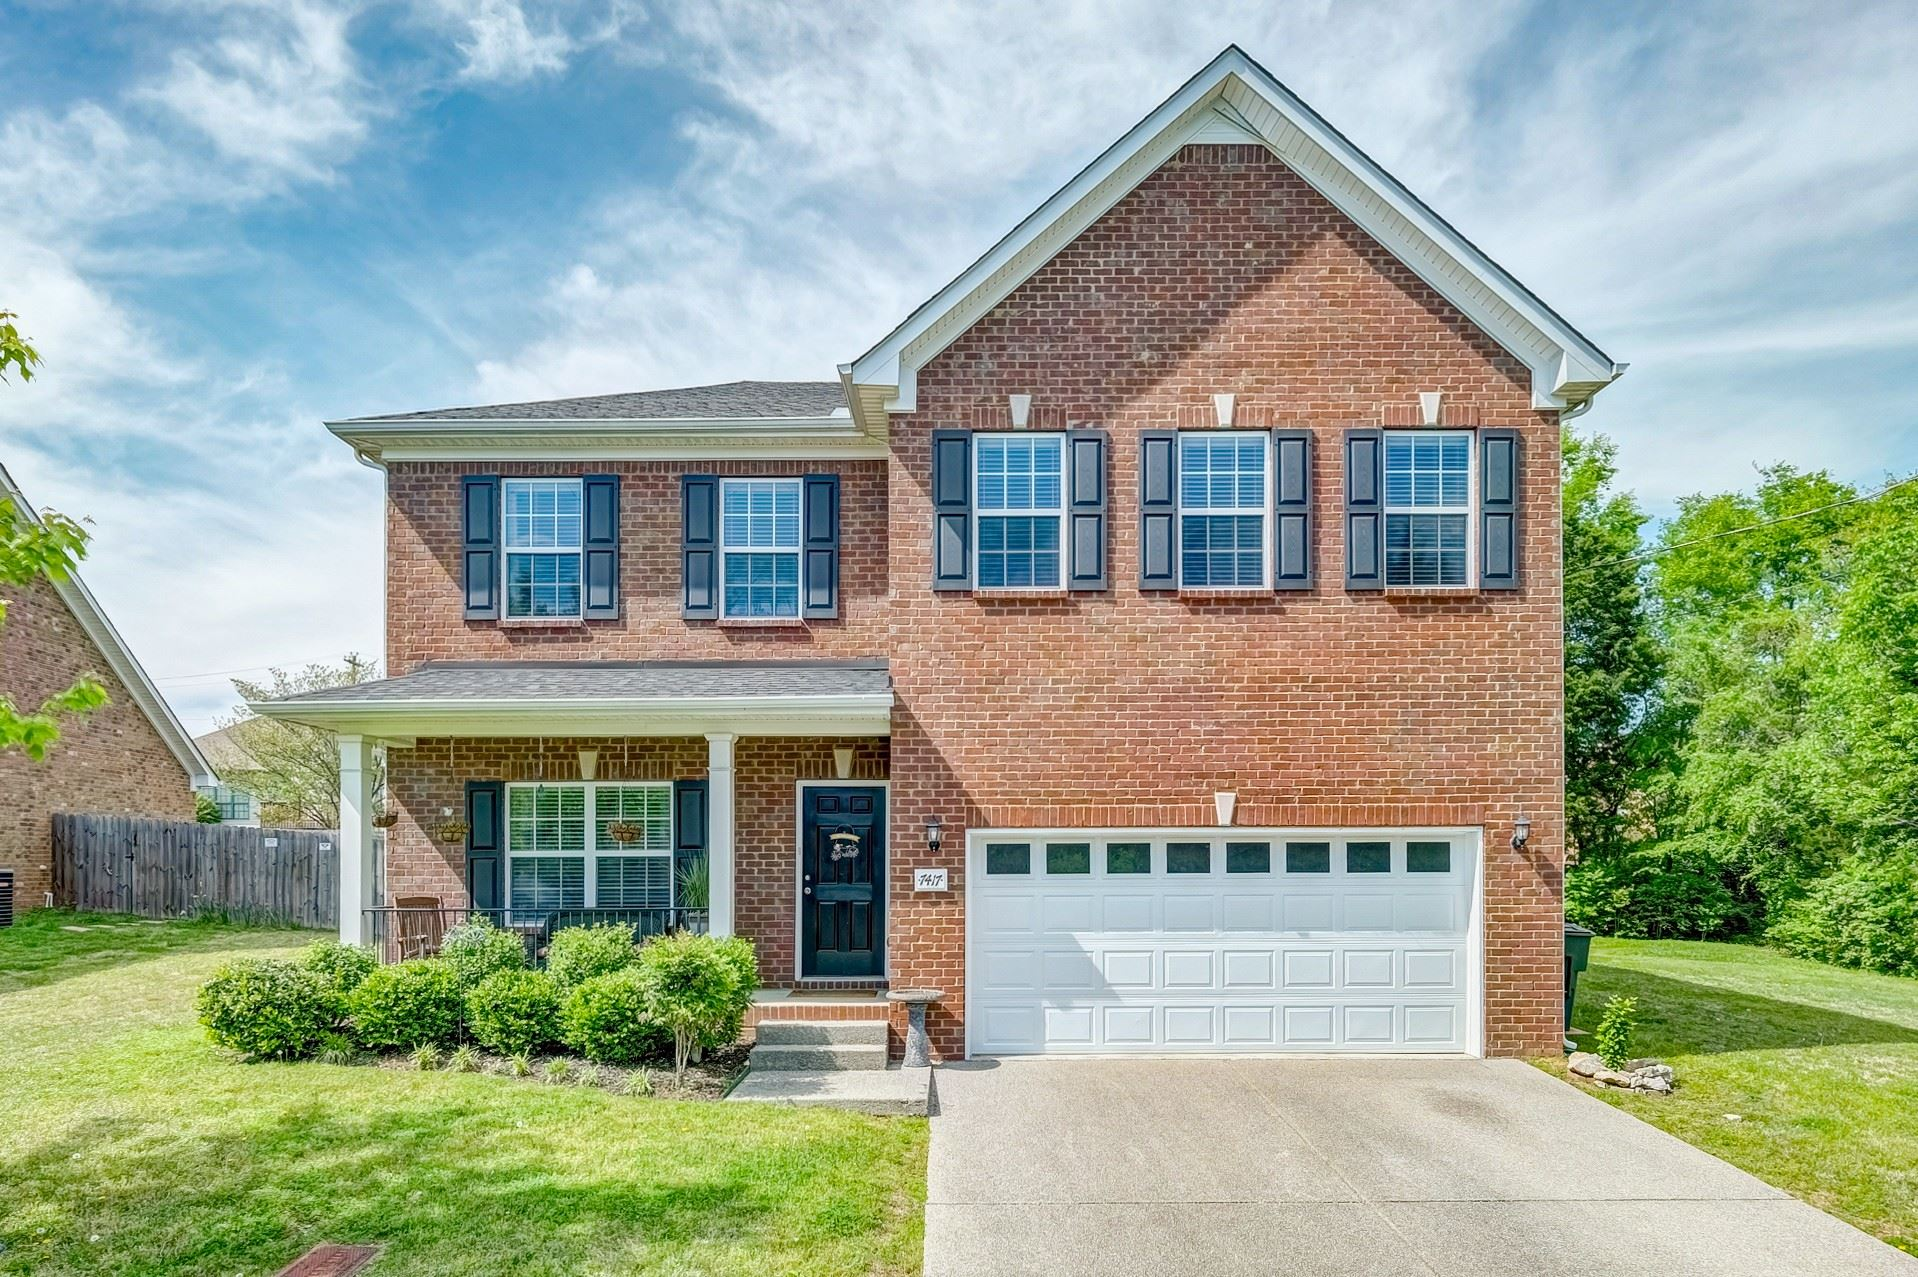 7417 Golden Apple Dr, Antioch, TN 37013 - #: 2144941